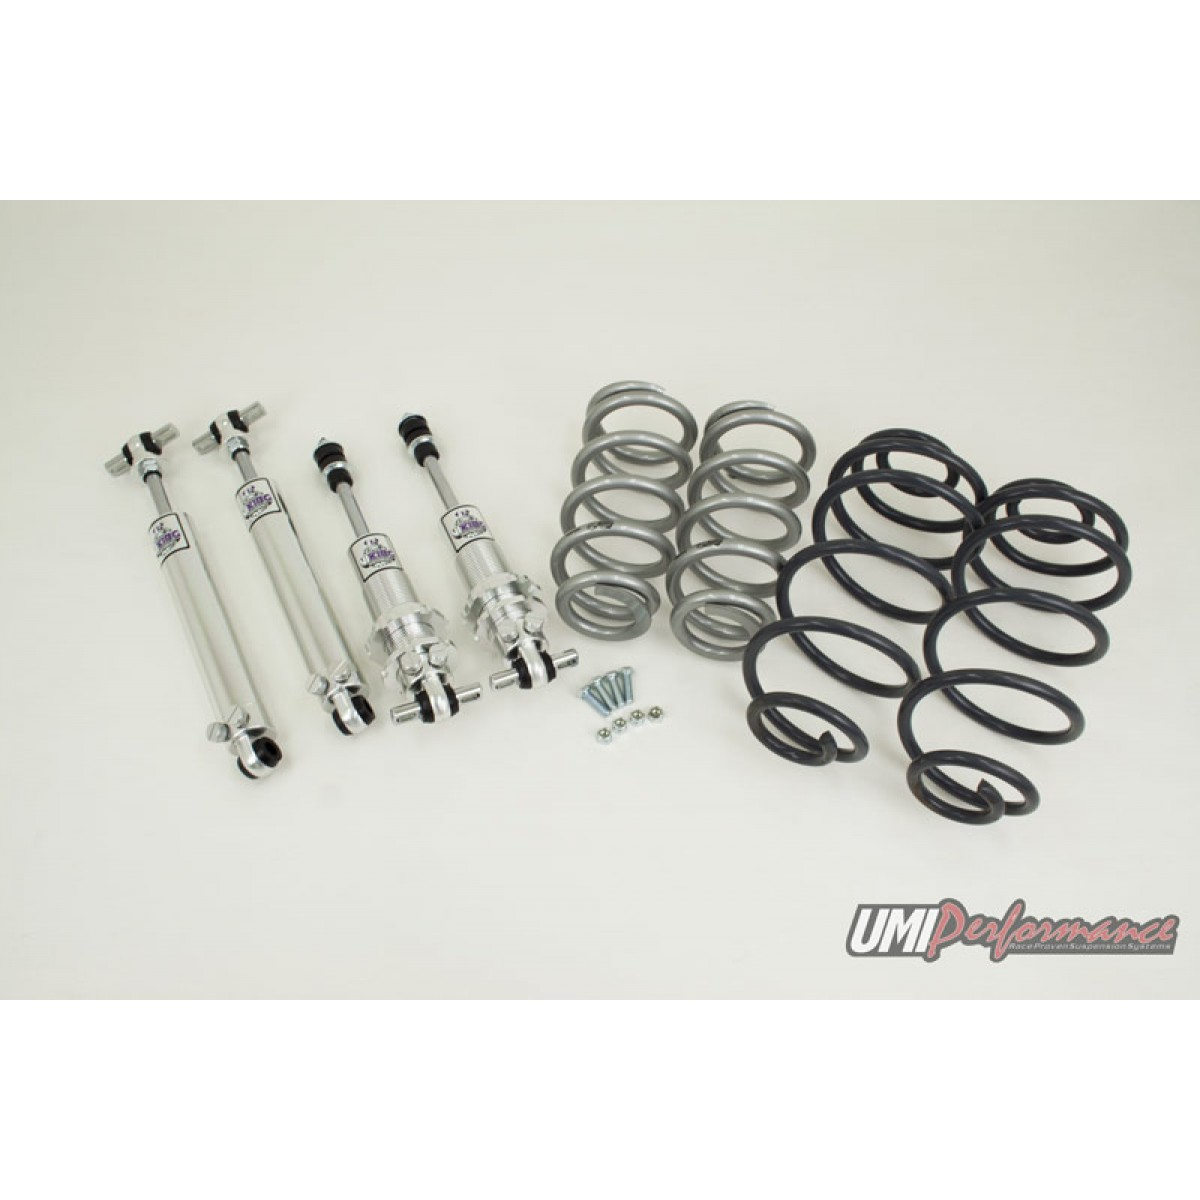 1968 1972 El Camino Lowering Kit Shock Spring 1964 Chevy Wiring Diagram With Adjustable Shocks